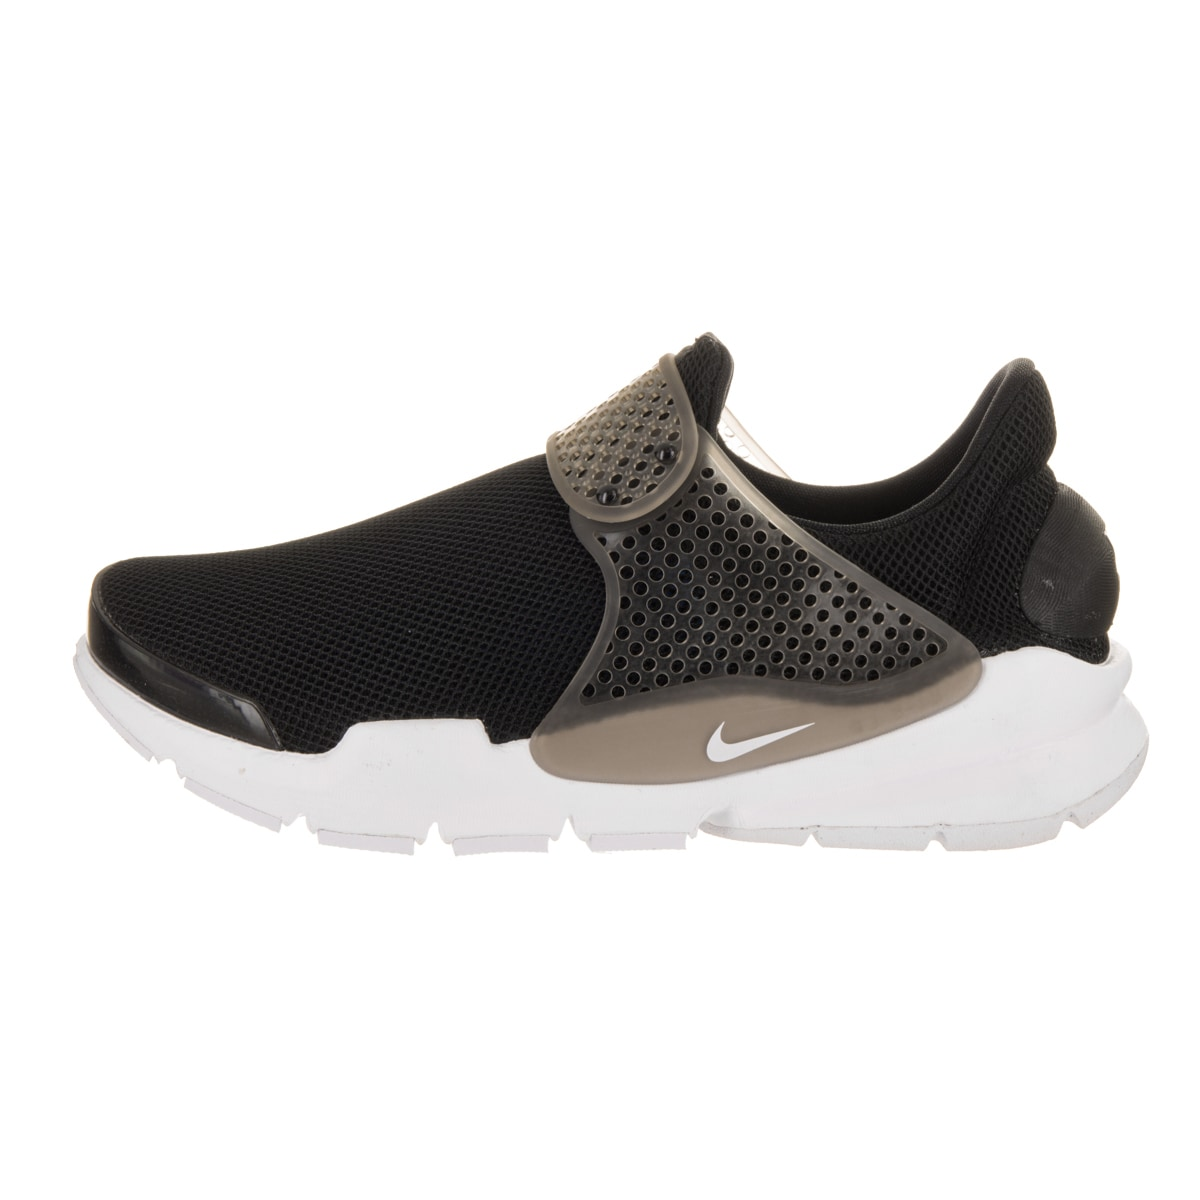 new arrival 2921c 0771a Shop Nike Women s Sock Dart BR Black Synthetic-leather Running Shoes - Free  Shipping Today - Overstock - 16120840